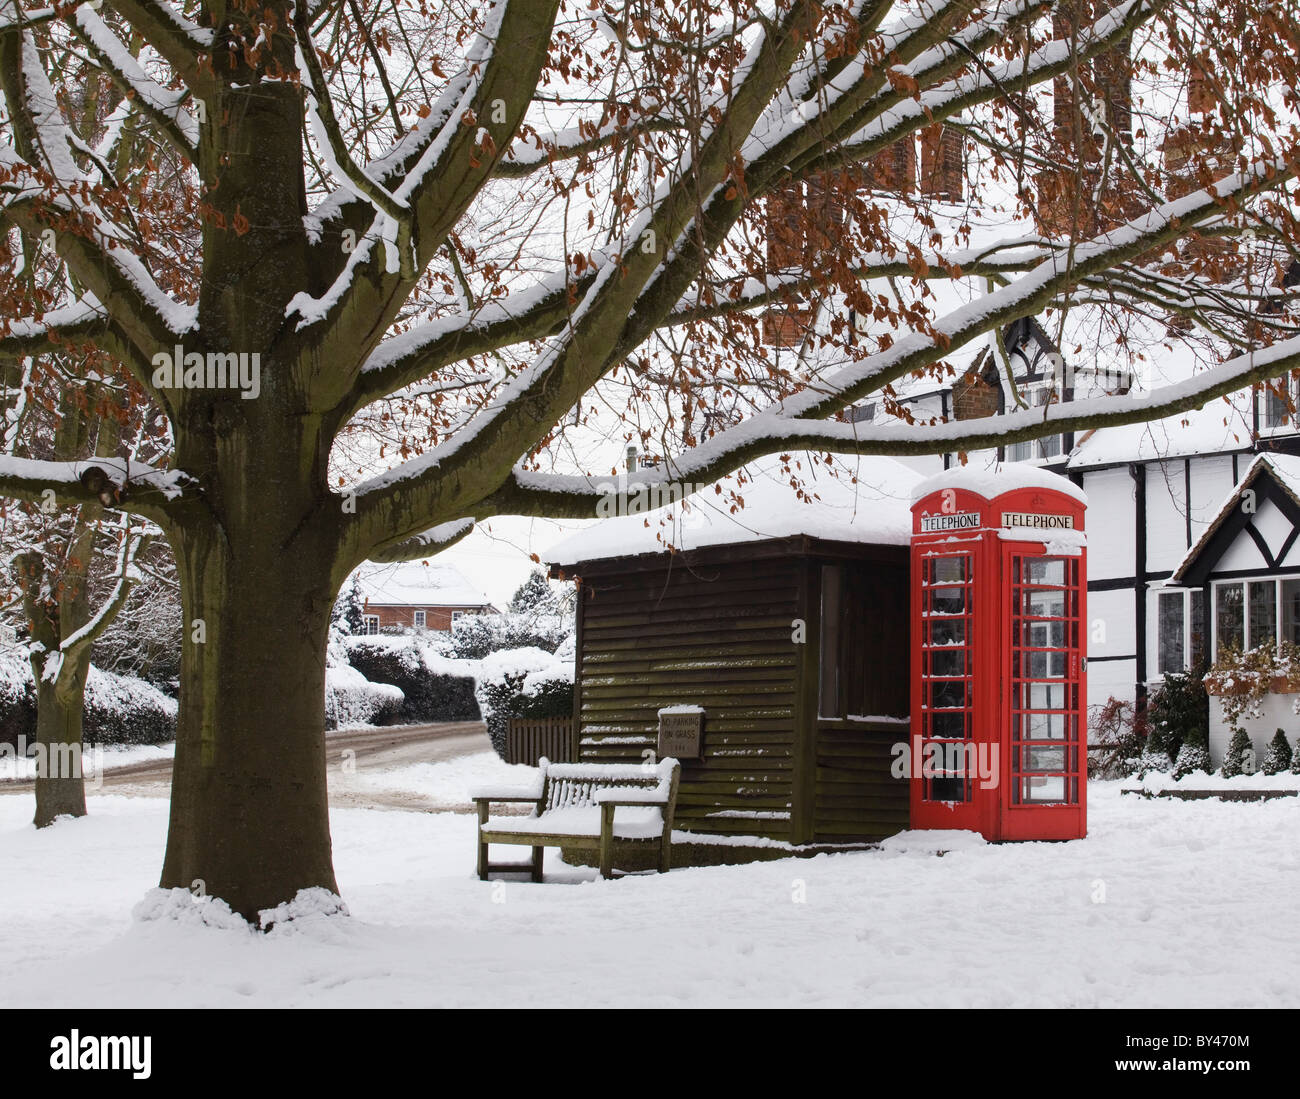 Red telephone box with snow on English village green - Stock Image